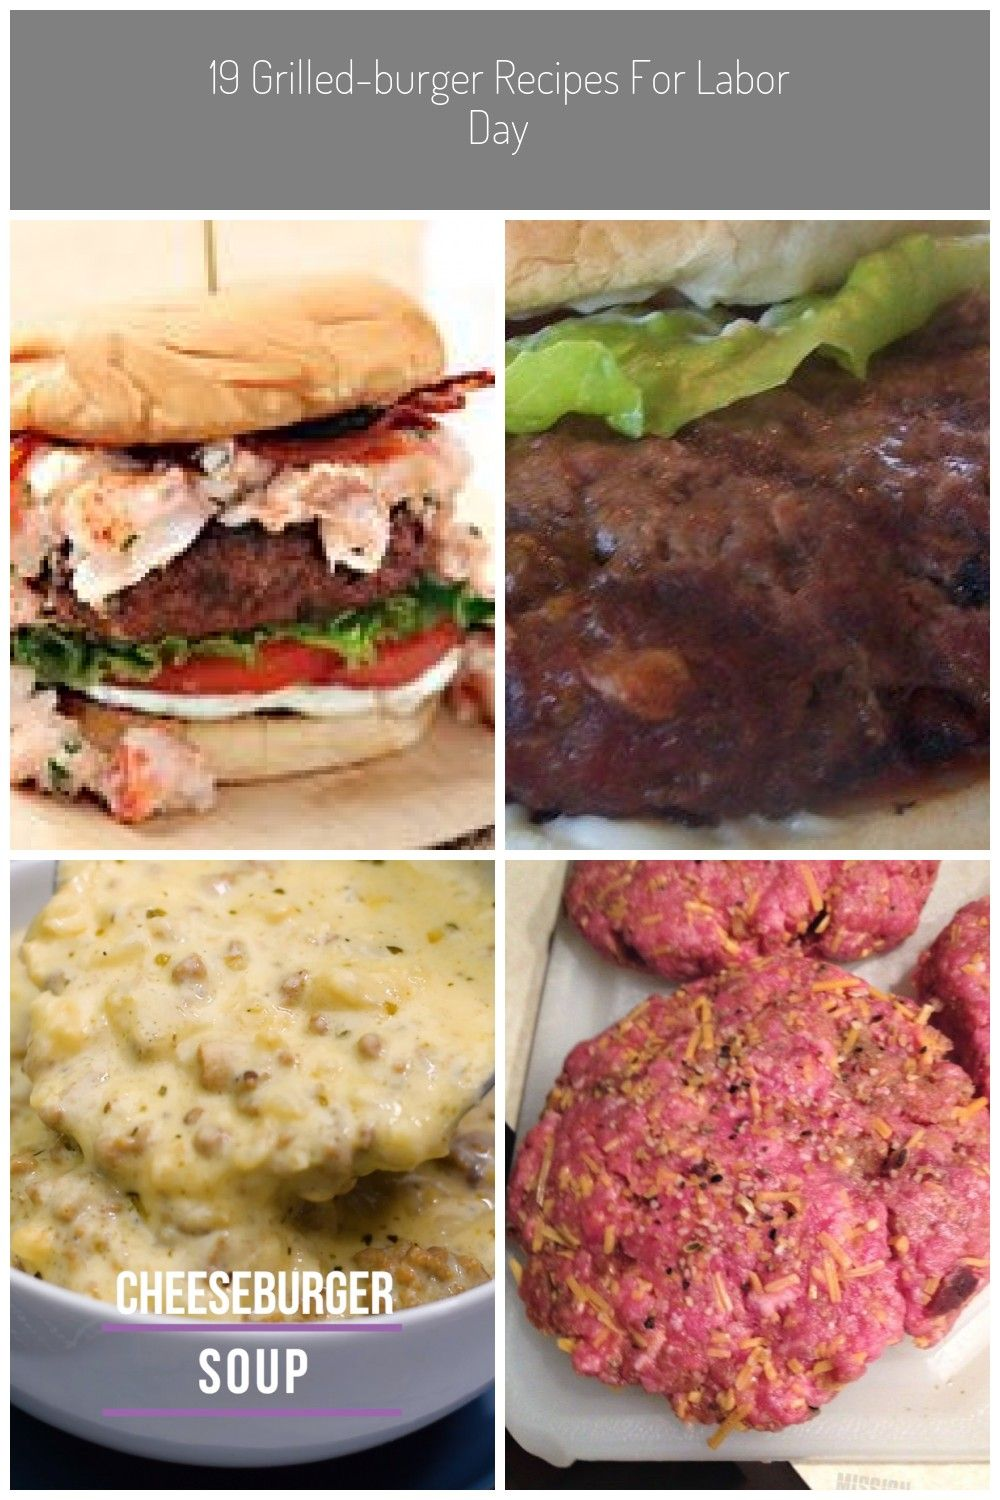 33 Hamburger Recipes For Memorial Day | Serious Eats hamburger recipes 19 Grilled-Burger Recipes fo